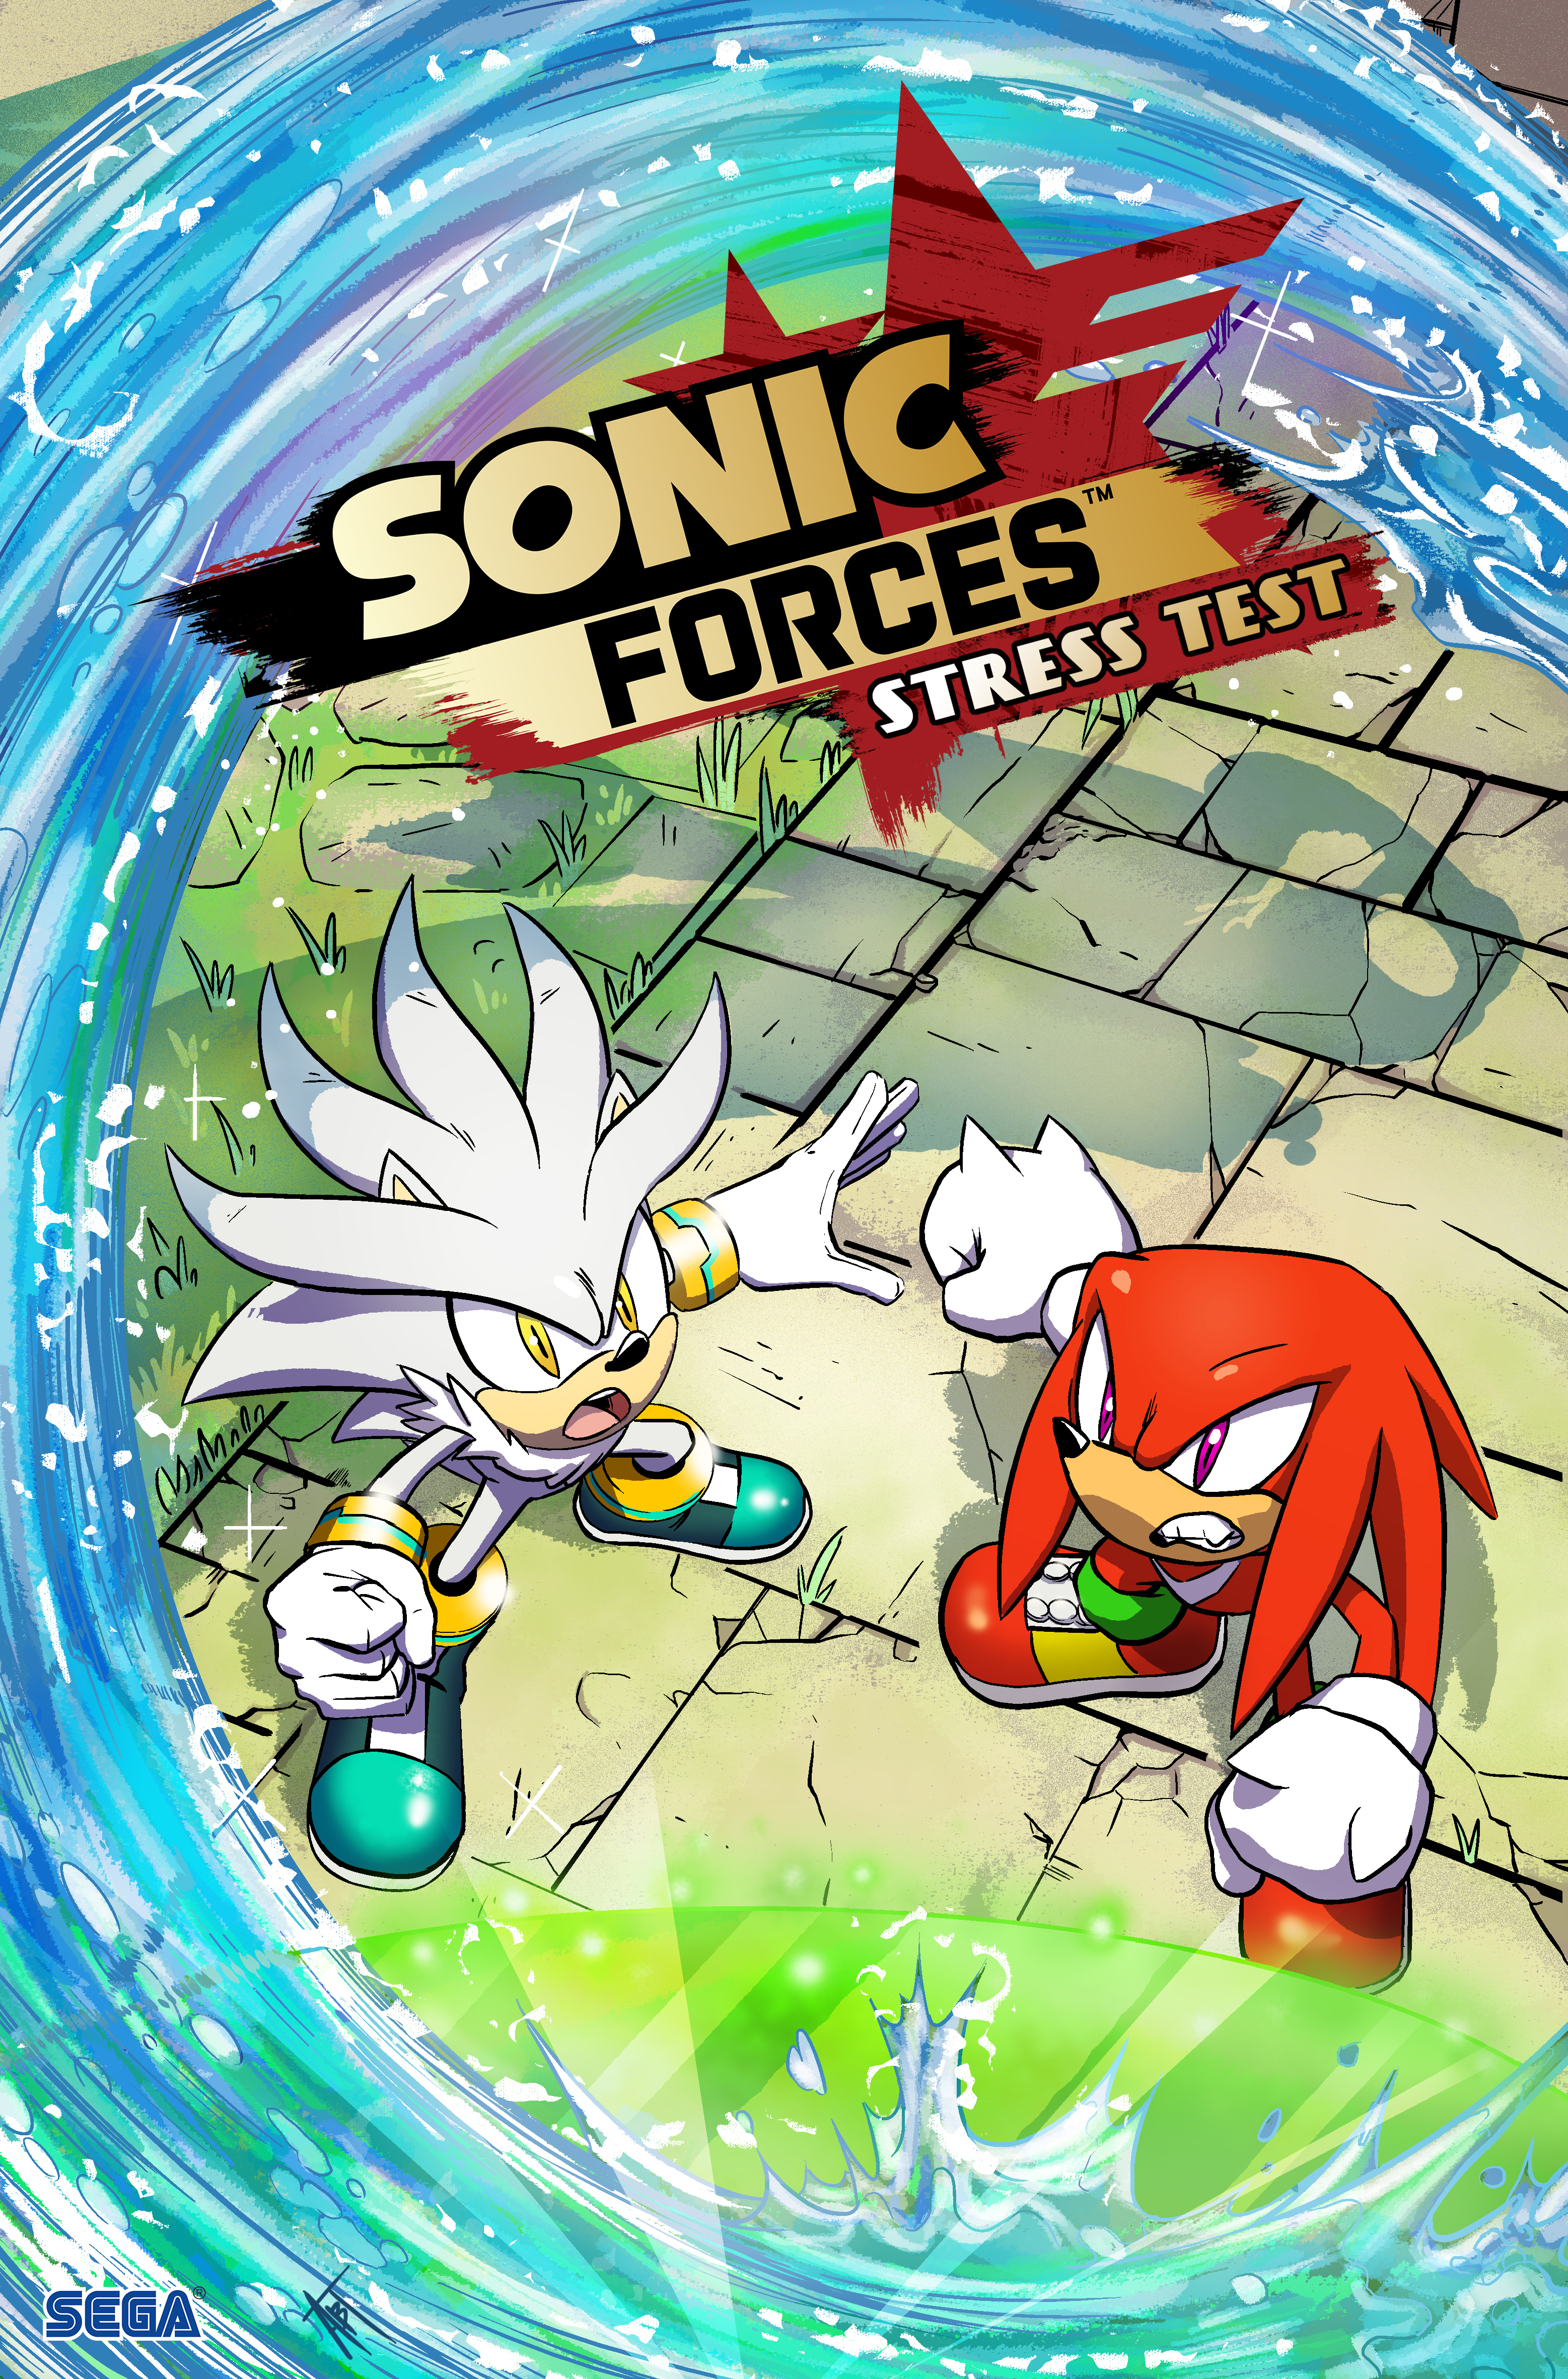 Sonic Forces: Stress Test